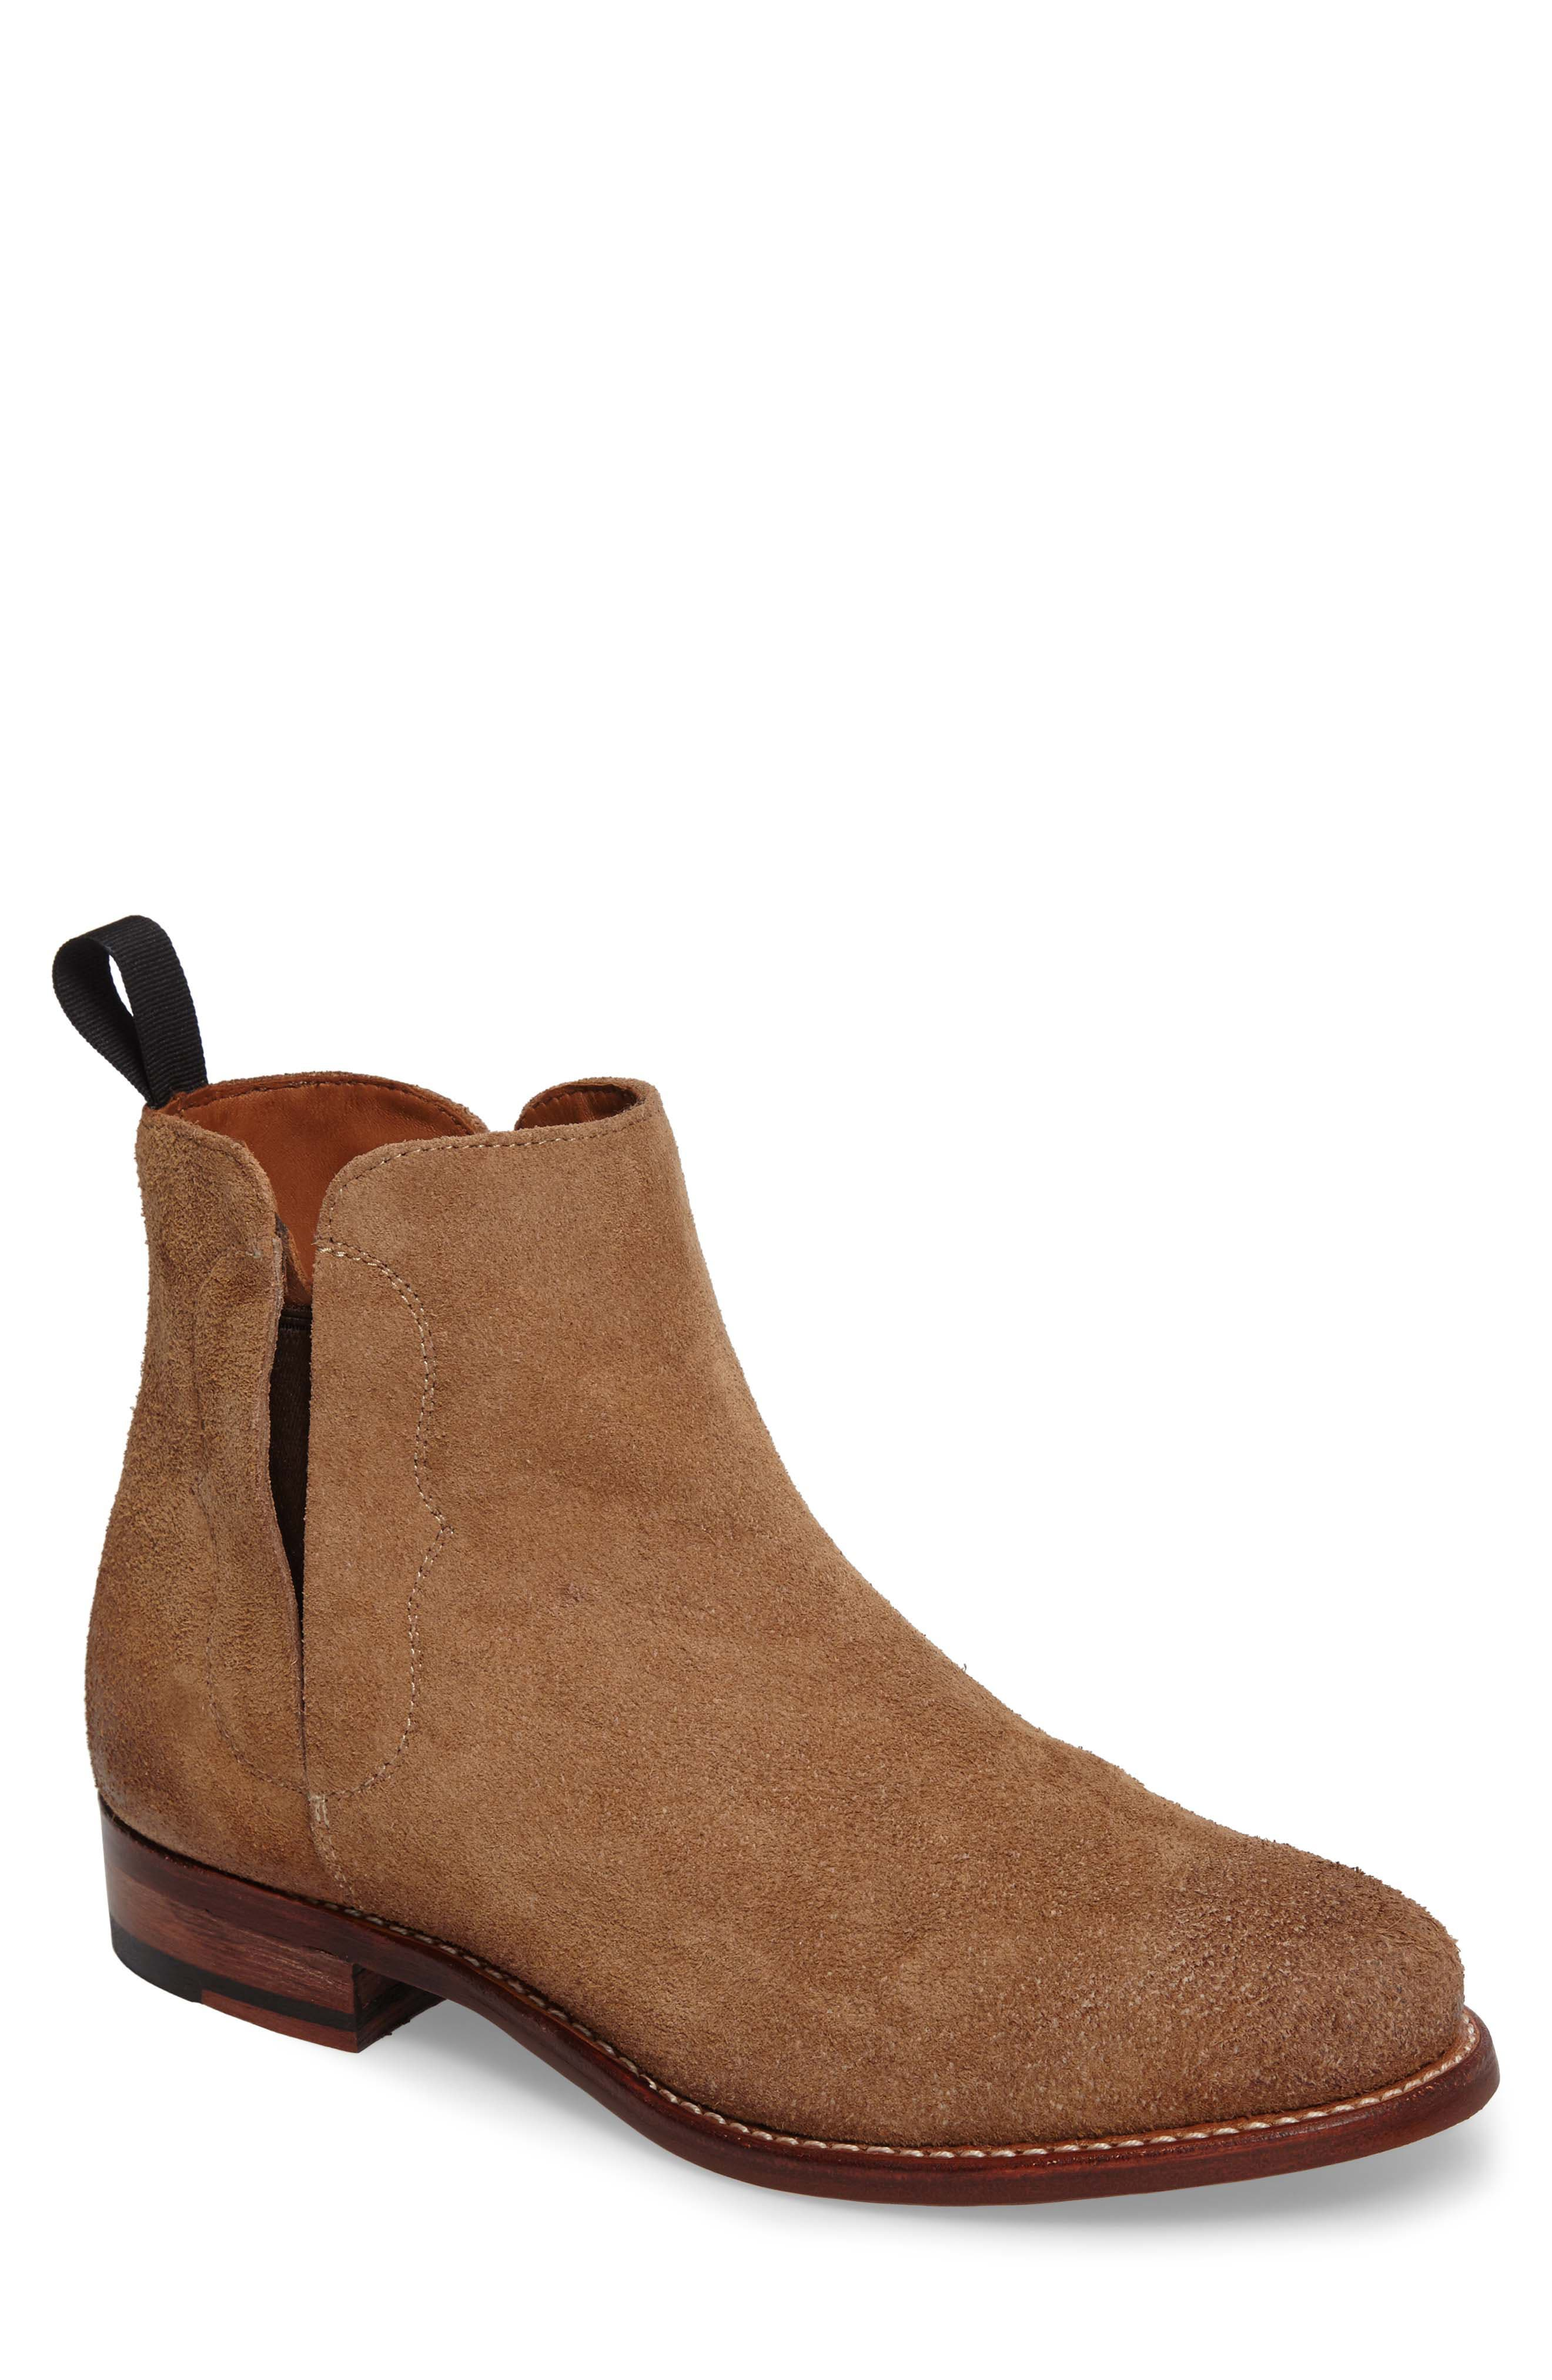 Ariat Maxwell Chelsea Boot,                         Main,                         color, Amaretto Suede